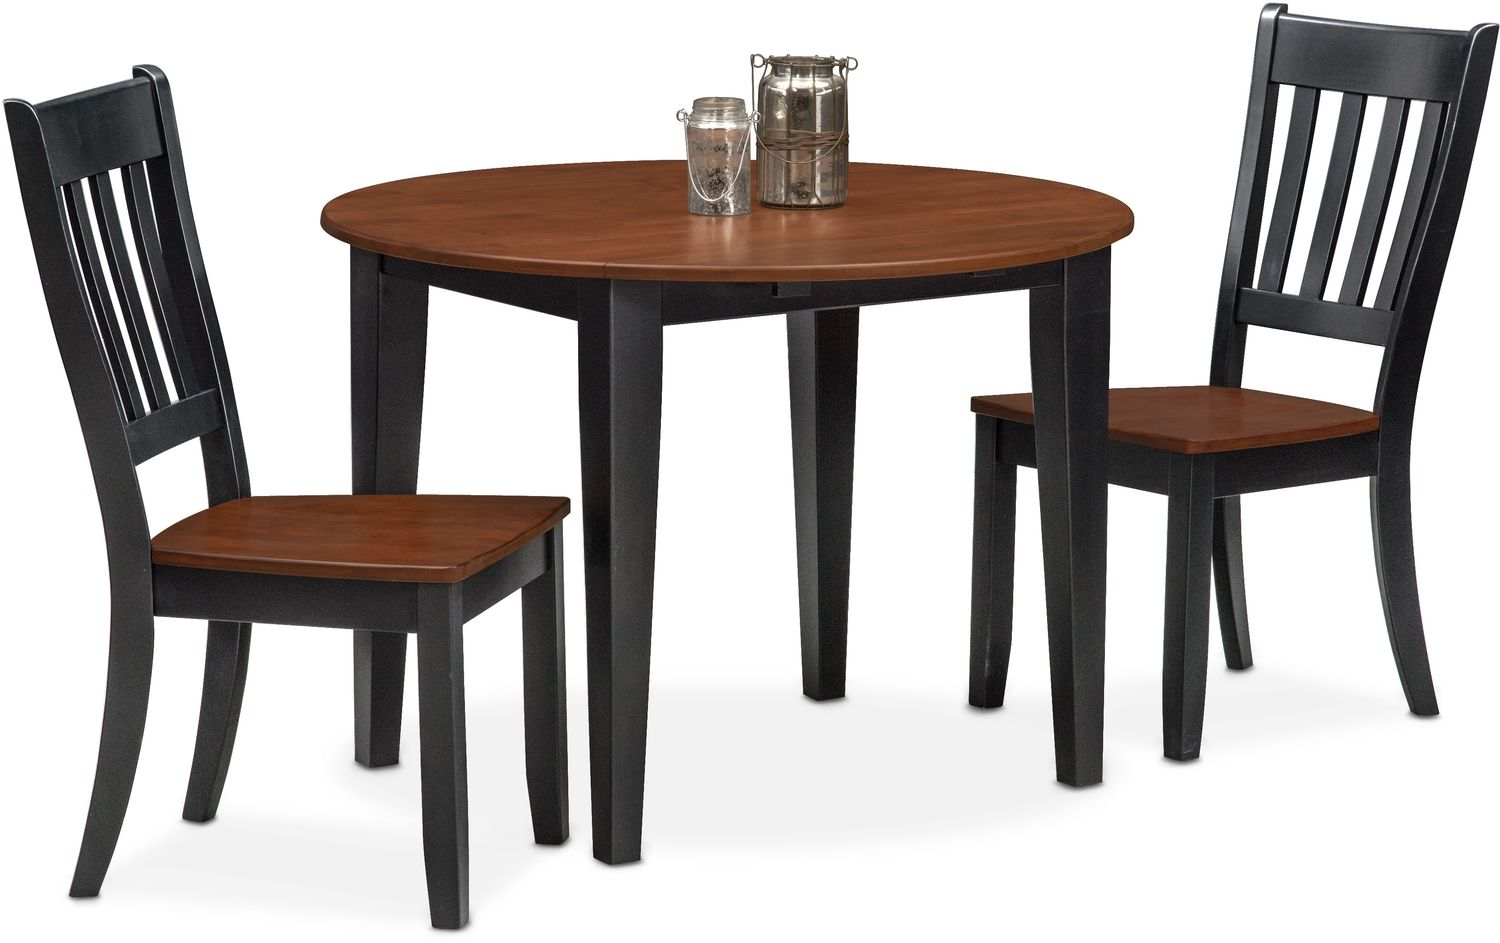 $299.97 Nantucket Drop Leaf Table And 2 Slat Back Chairs   Black And Cherry  By Apt.1710